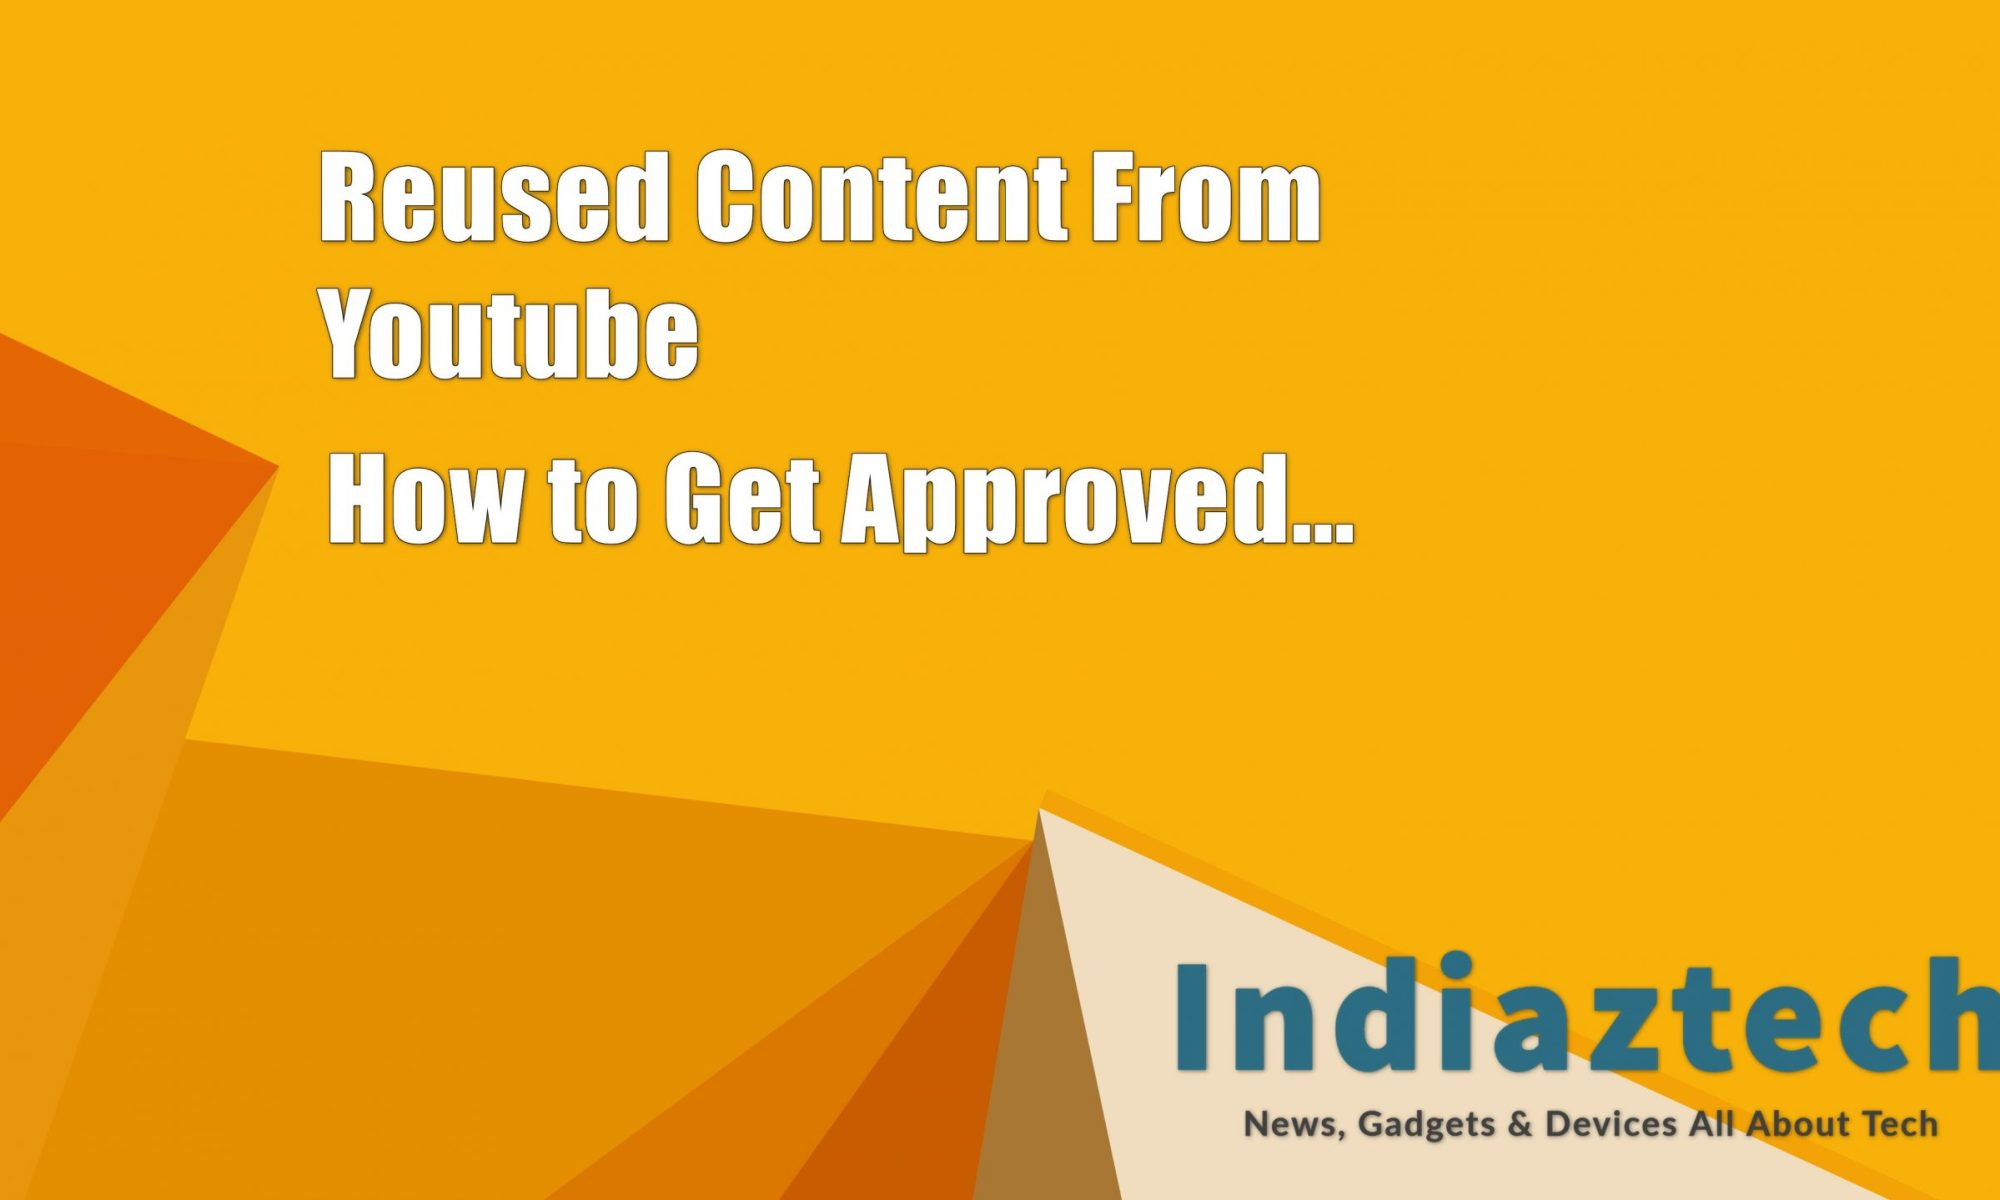 Reused Content On YouTube Policy Adsense Monetization How can we solve it?